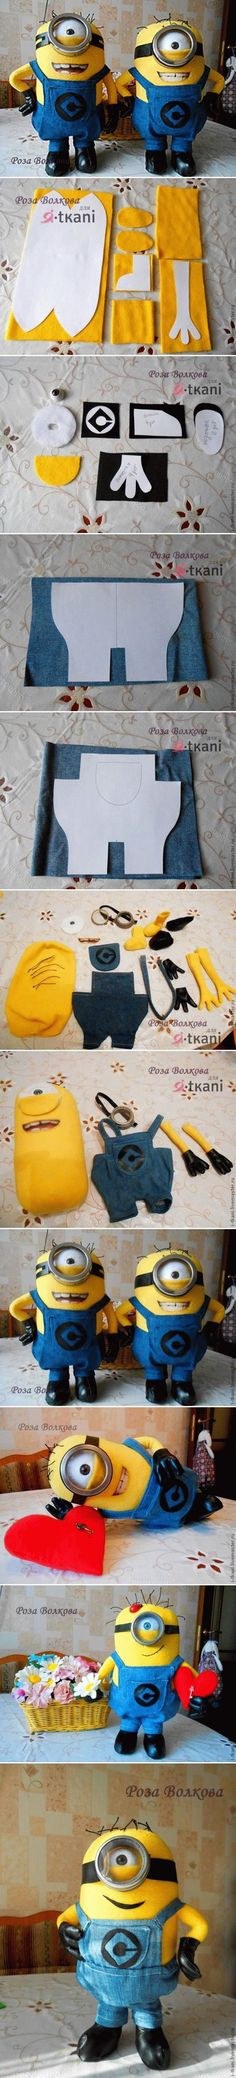 DIY Minion Dolls